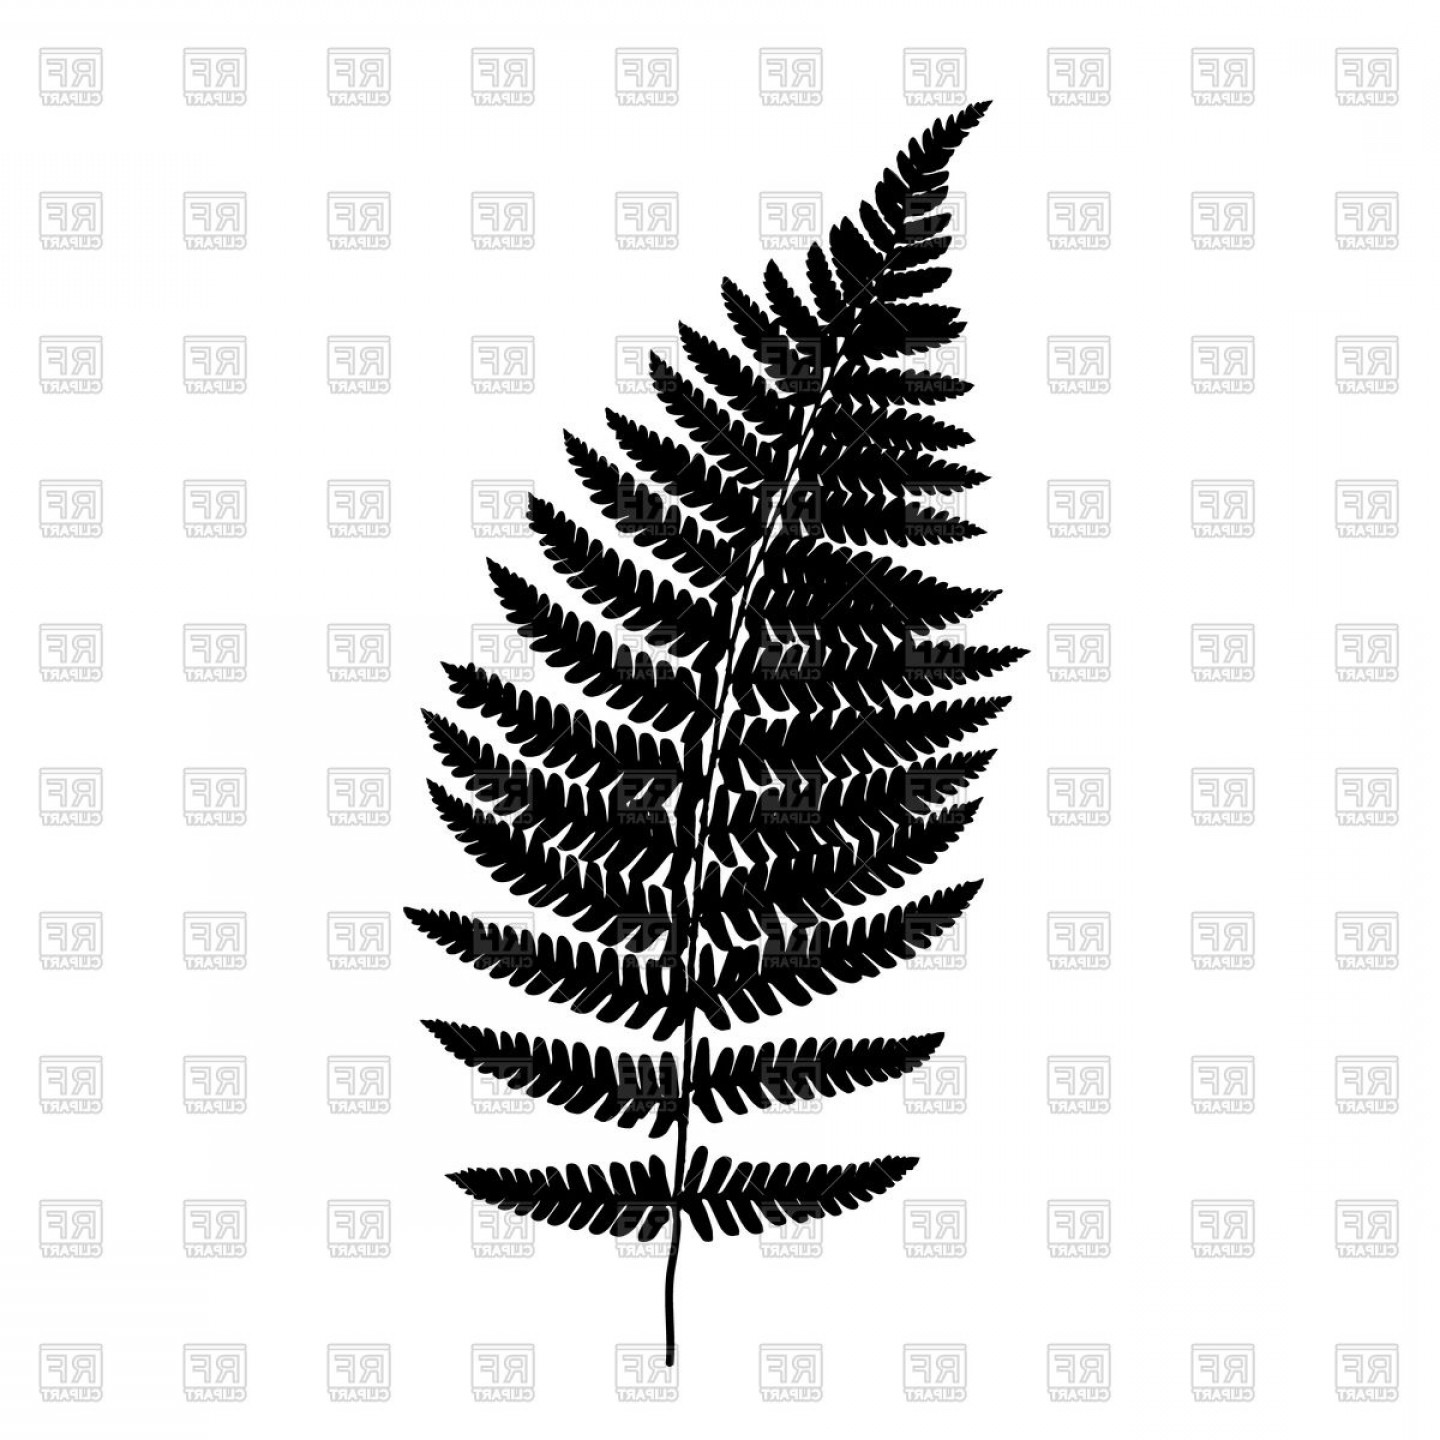 Fern Frond Black Silhouette Vector Clipart.